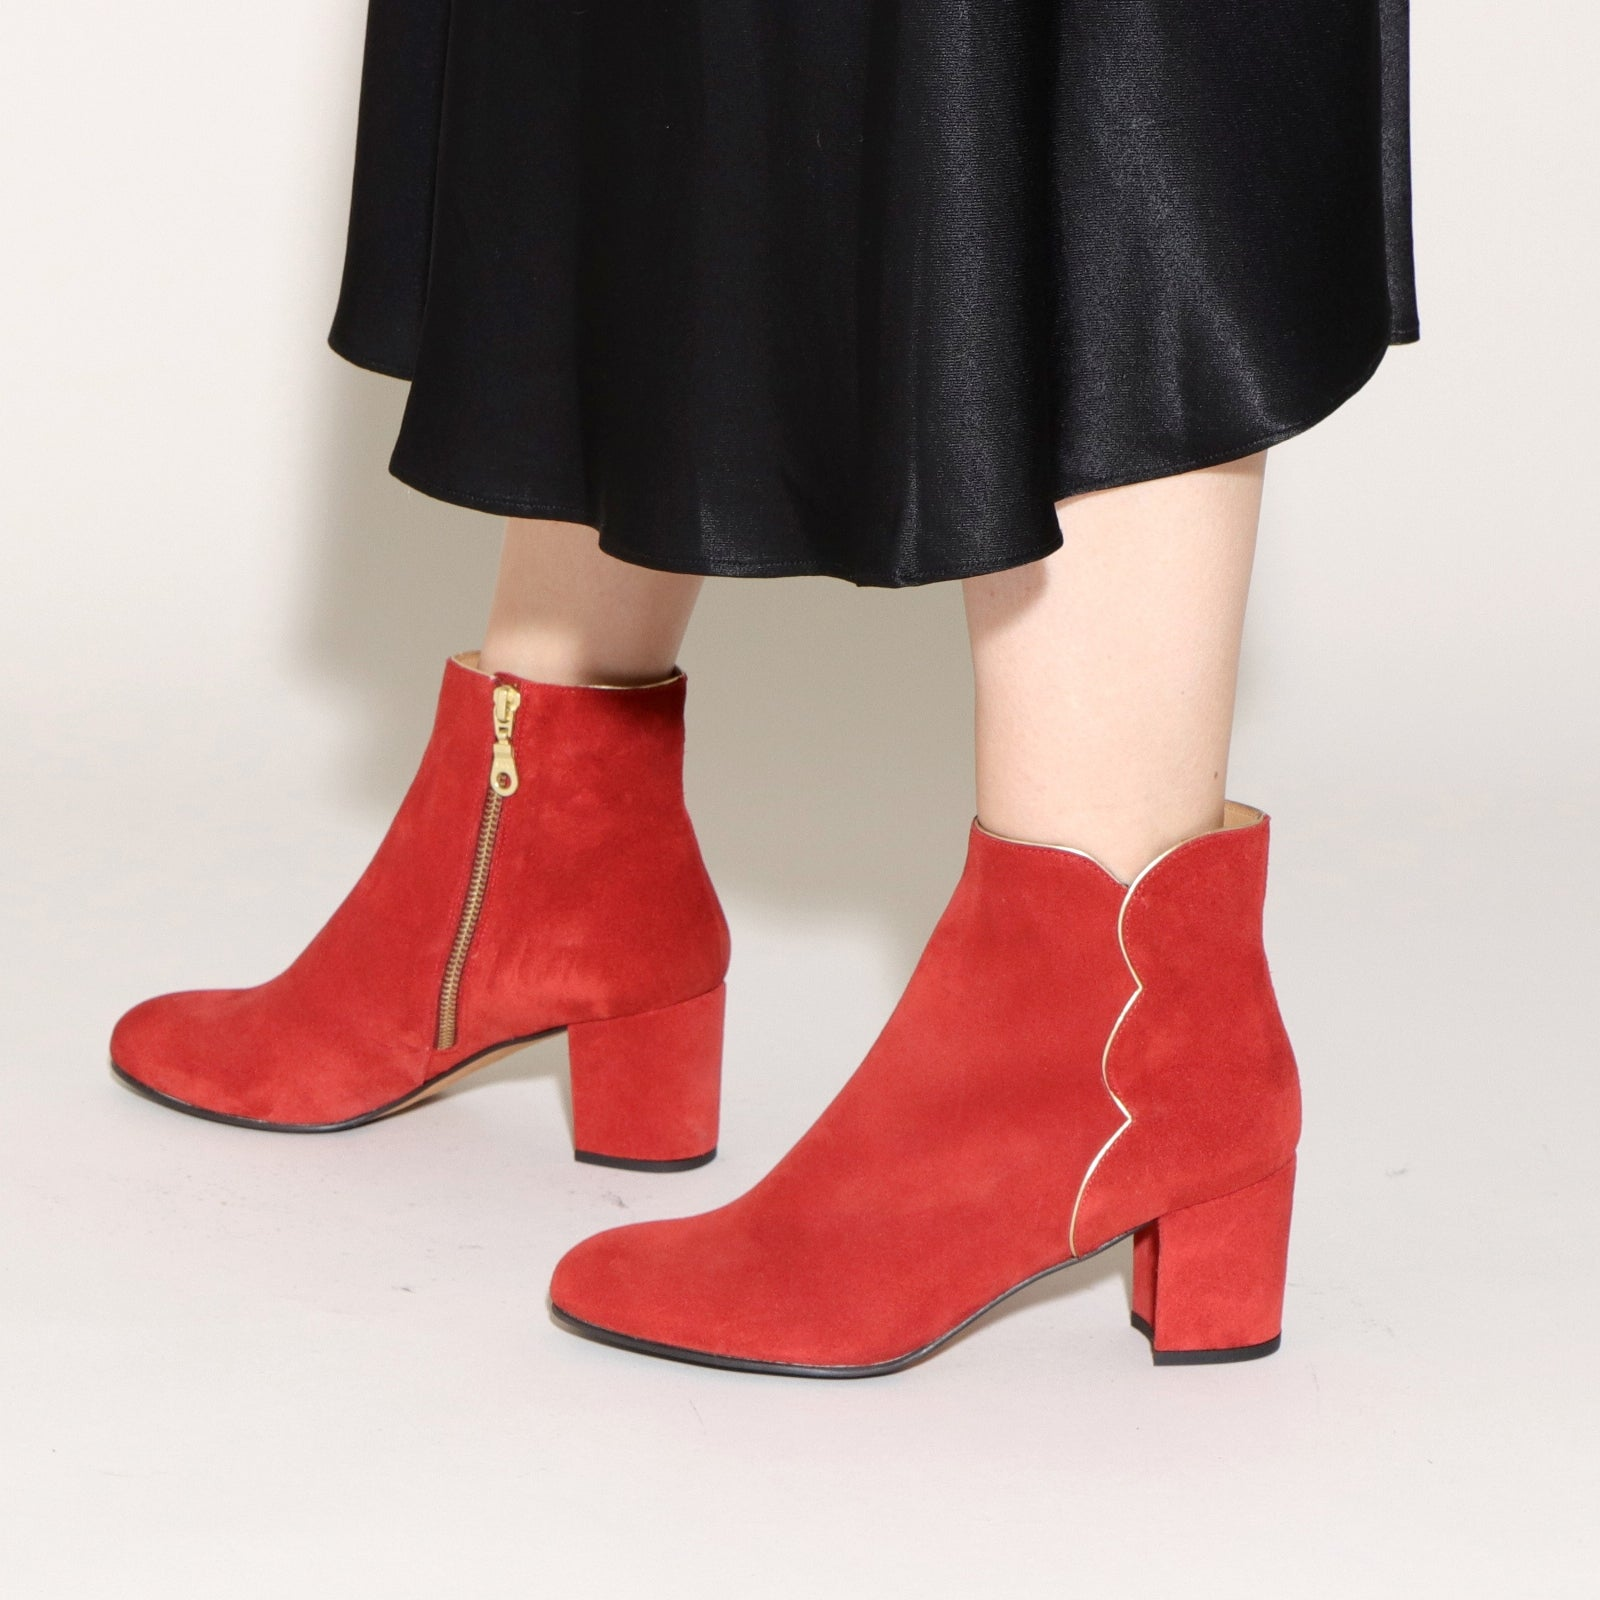 NAYA Suede Red & Nappa Gold